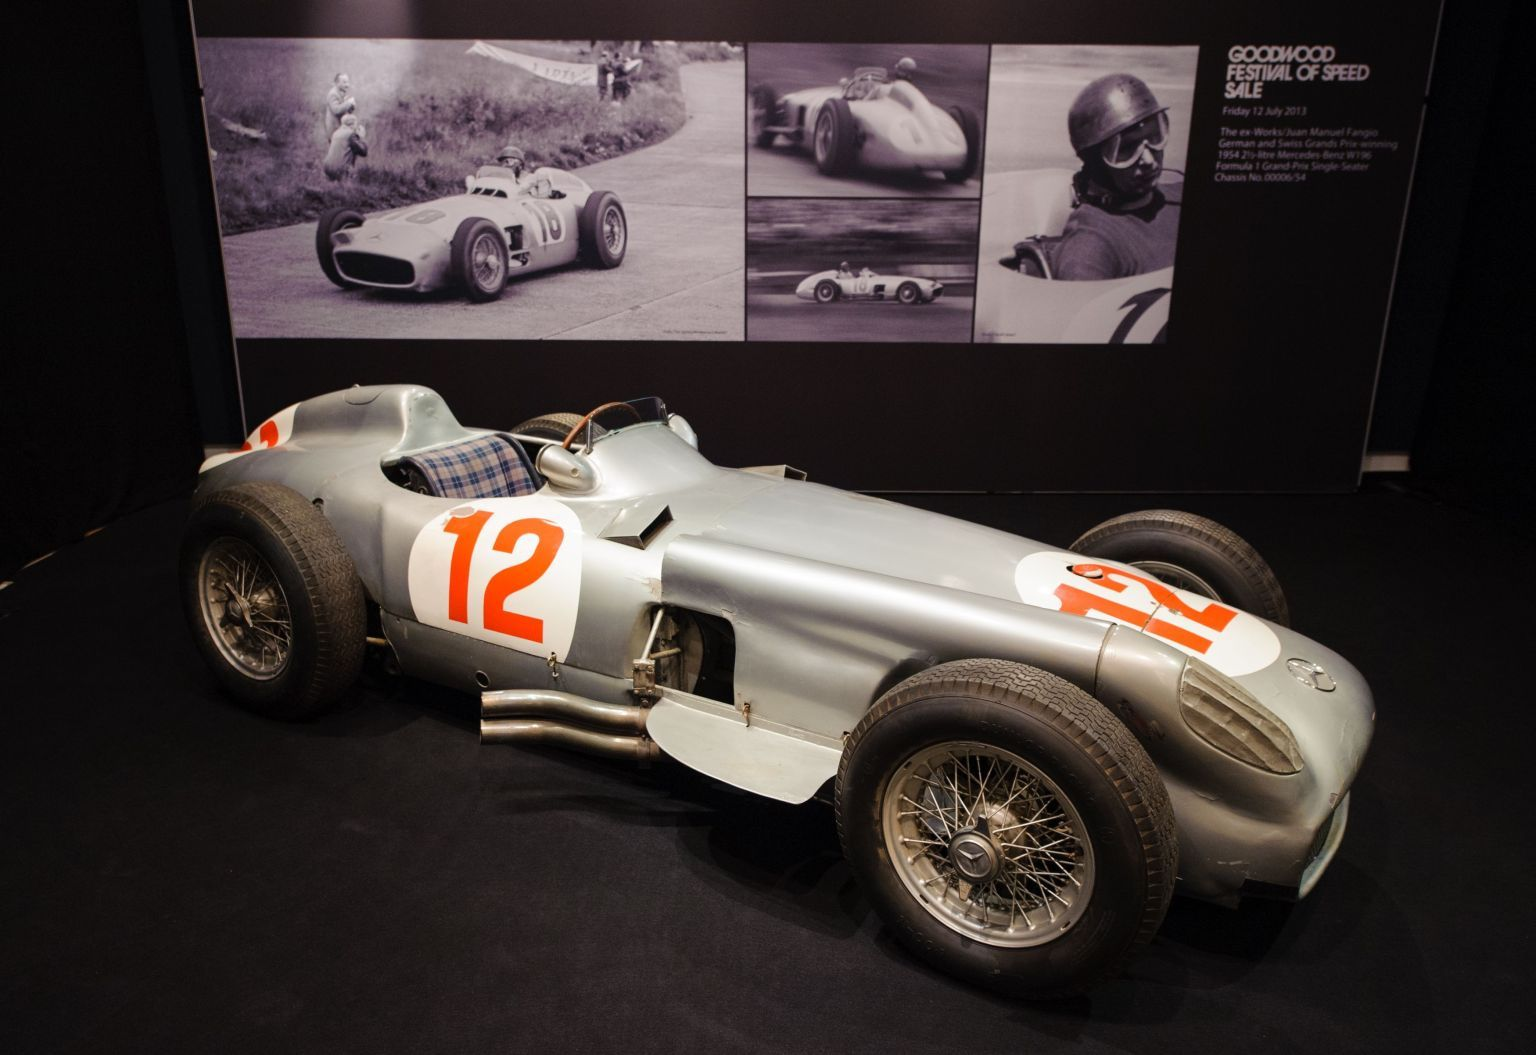 Most expensive car ever auctioned juan manuel fangio s mercedes w196 sells for record 29 6 million